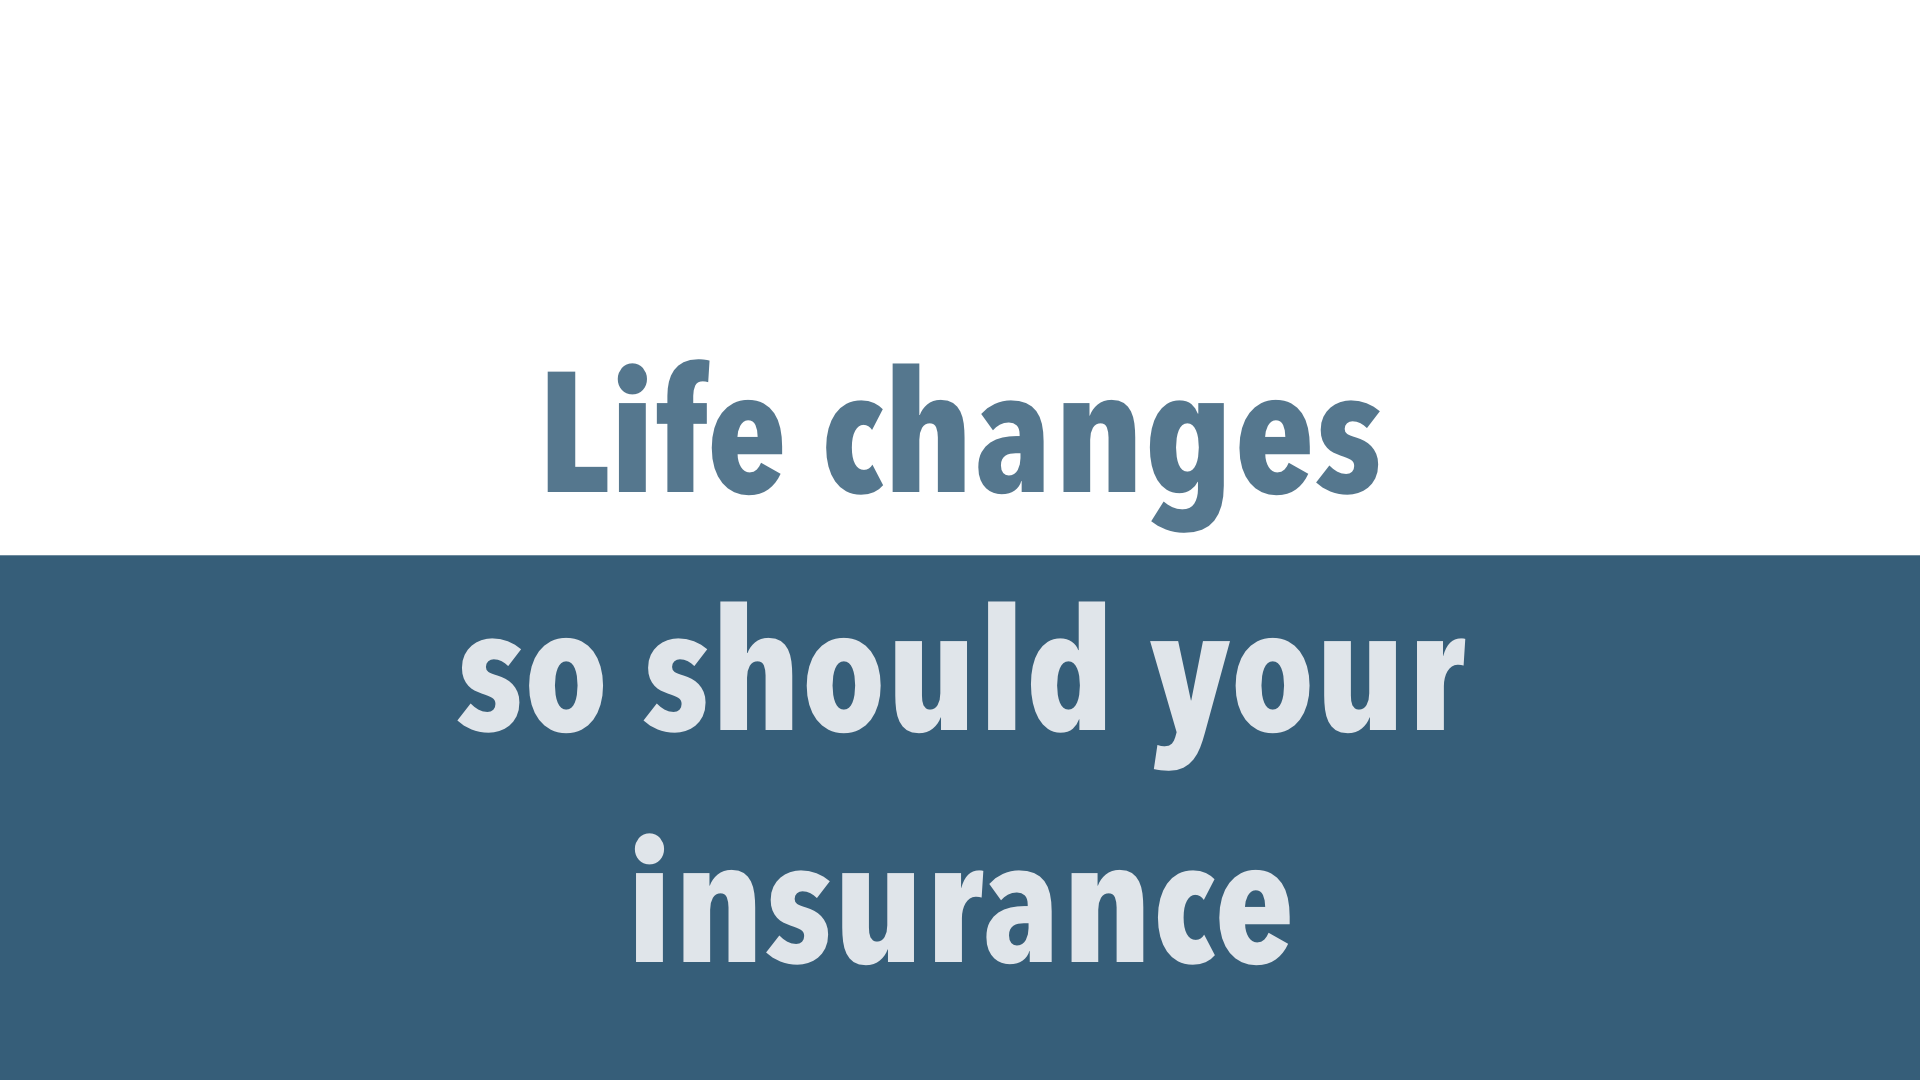 Life changes, so should your insurance